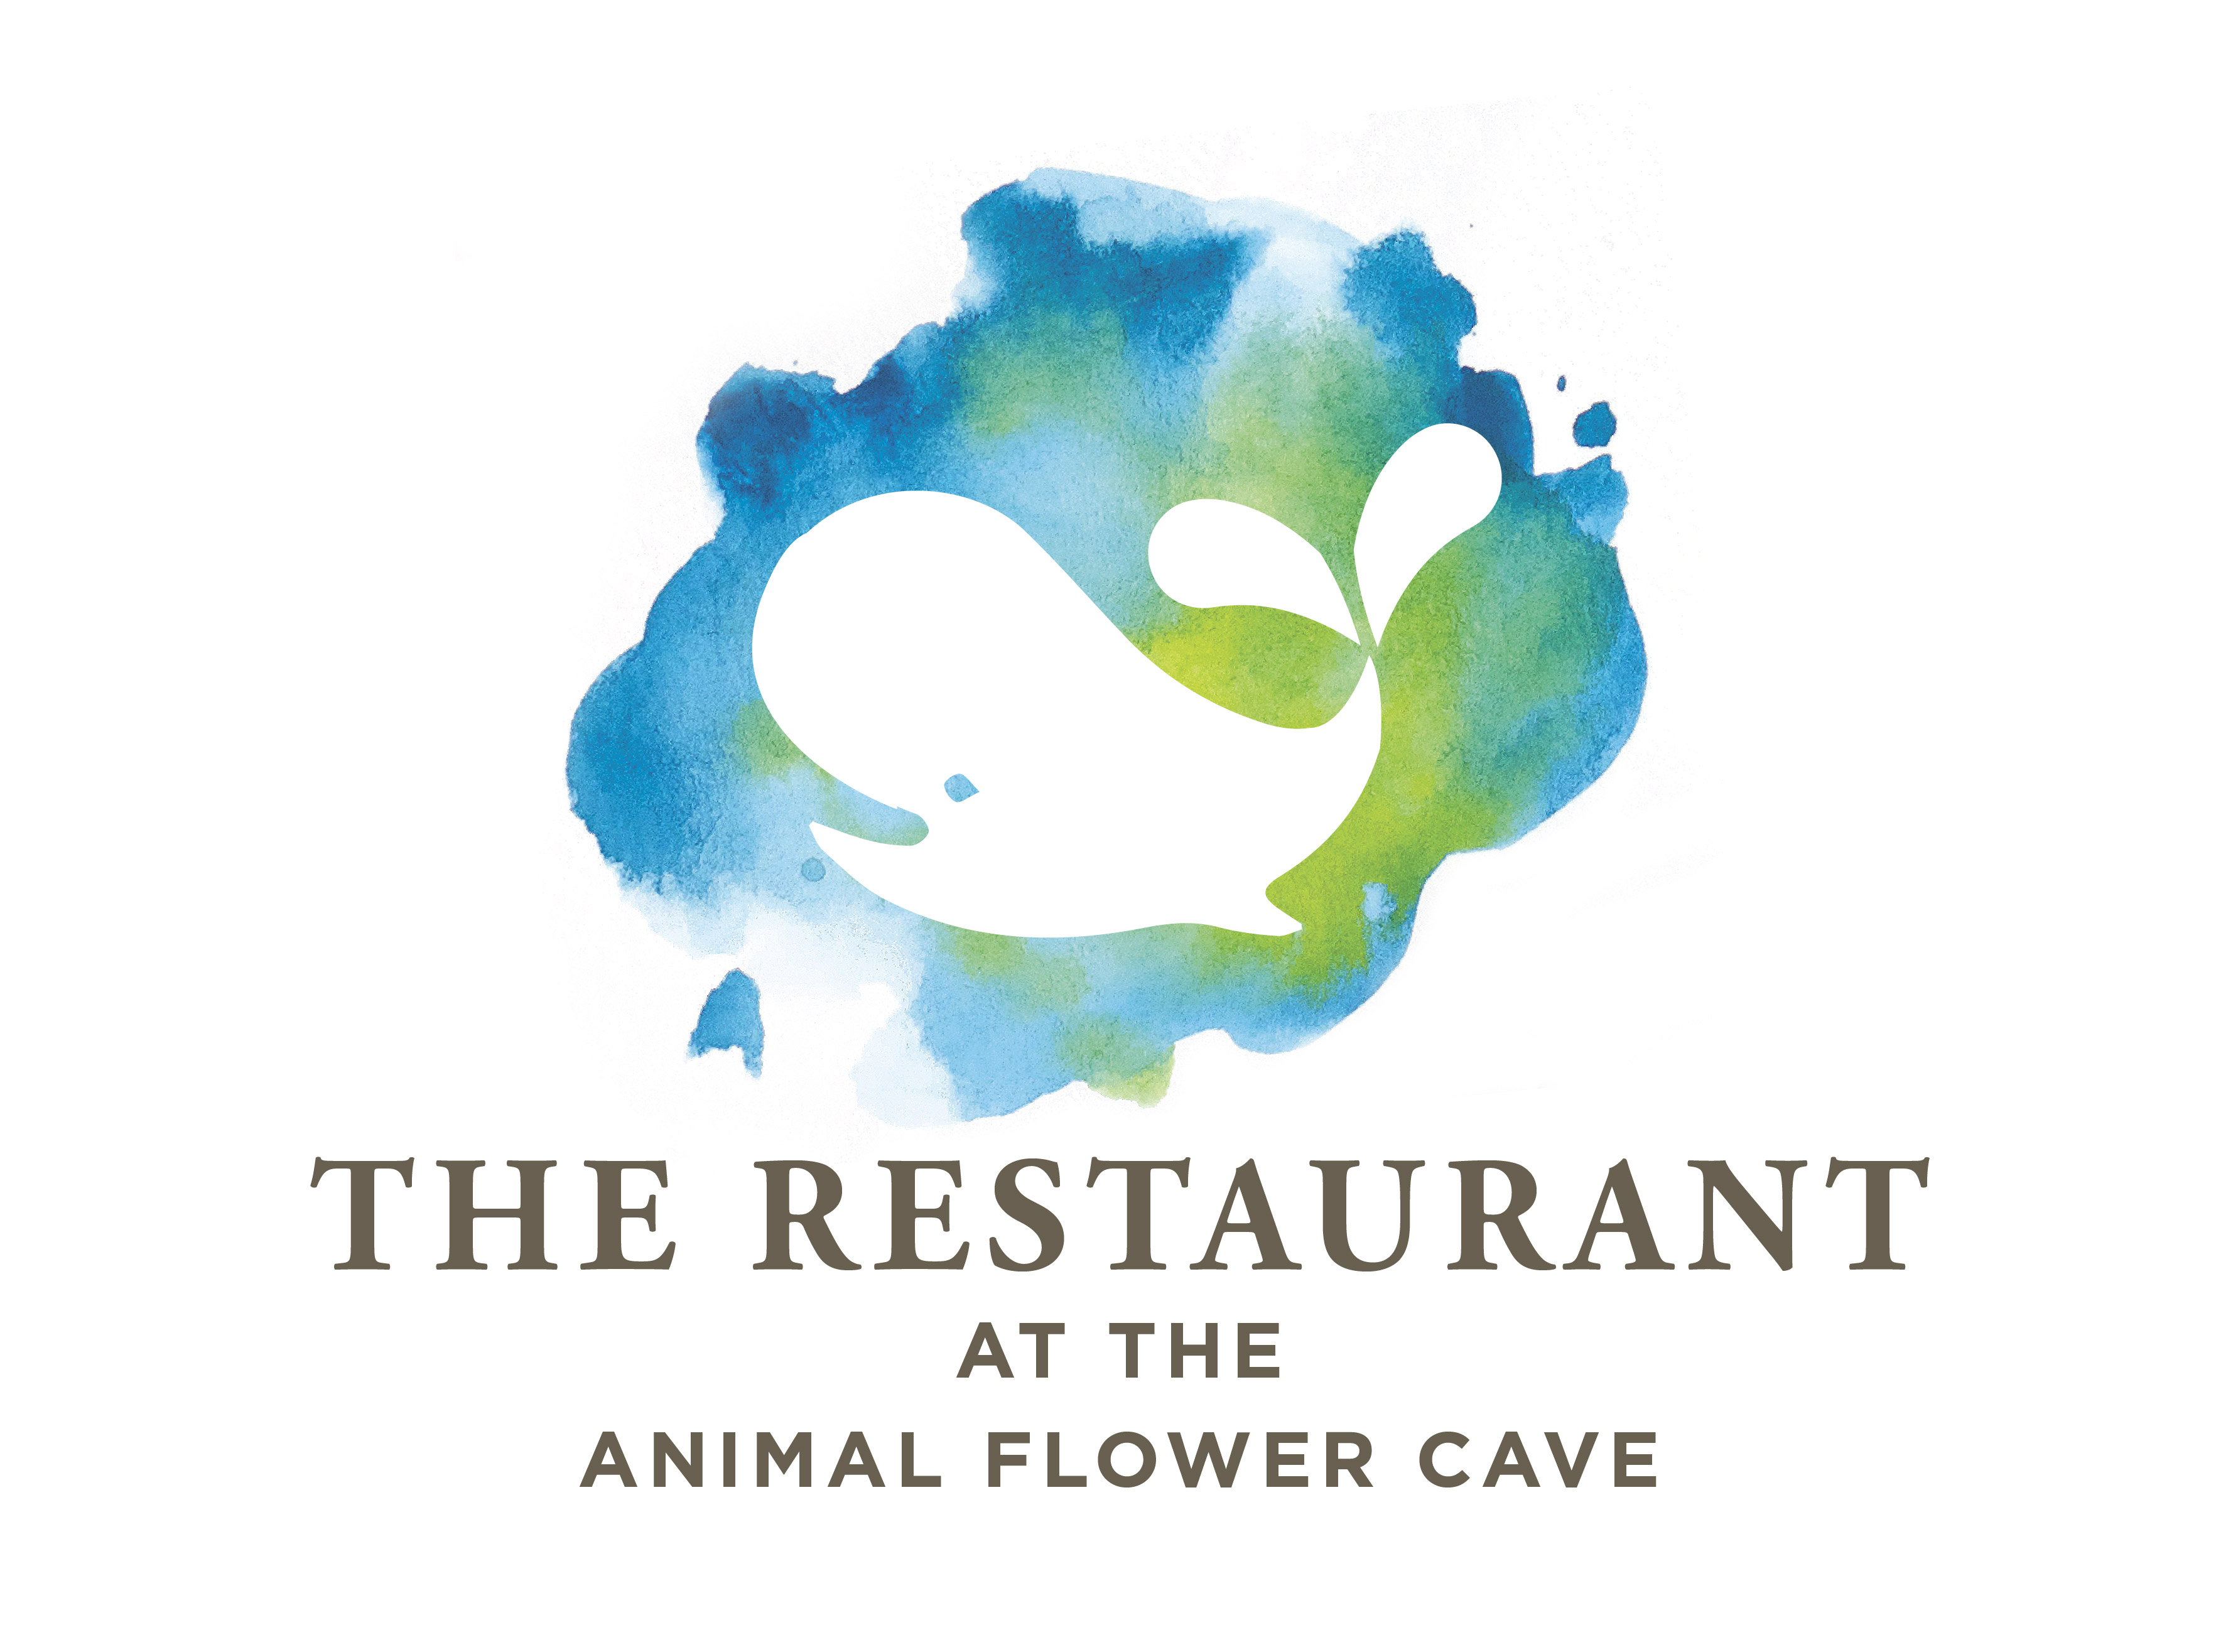 The Animal Flower Cave